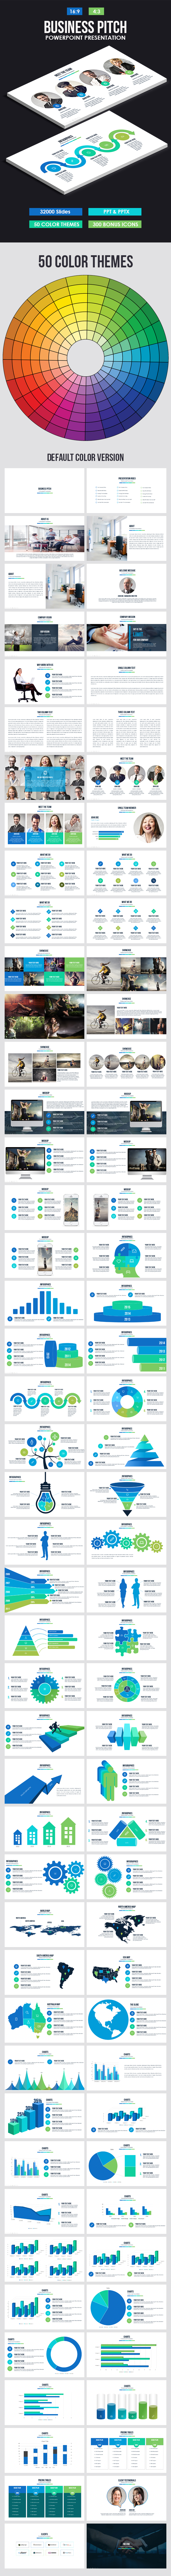 Business Pitch Powerpoint Presentation